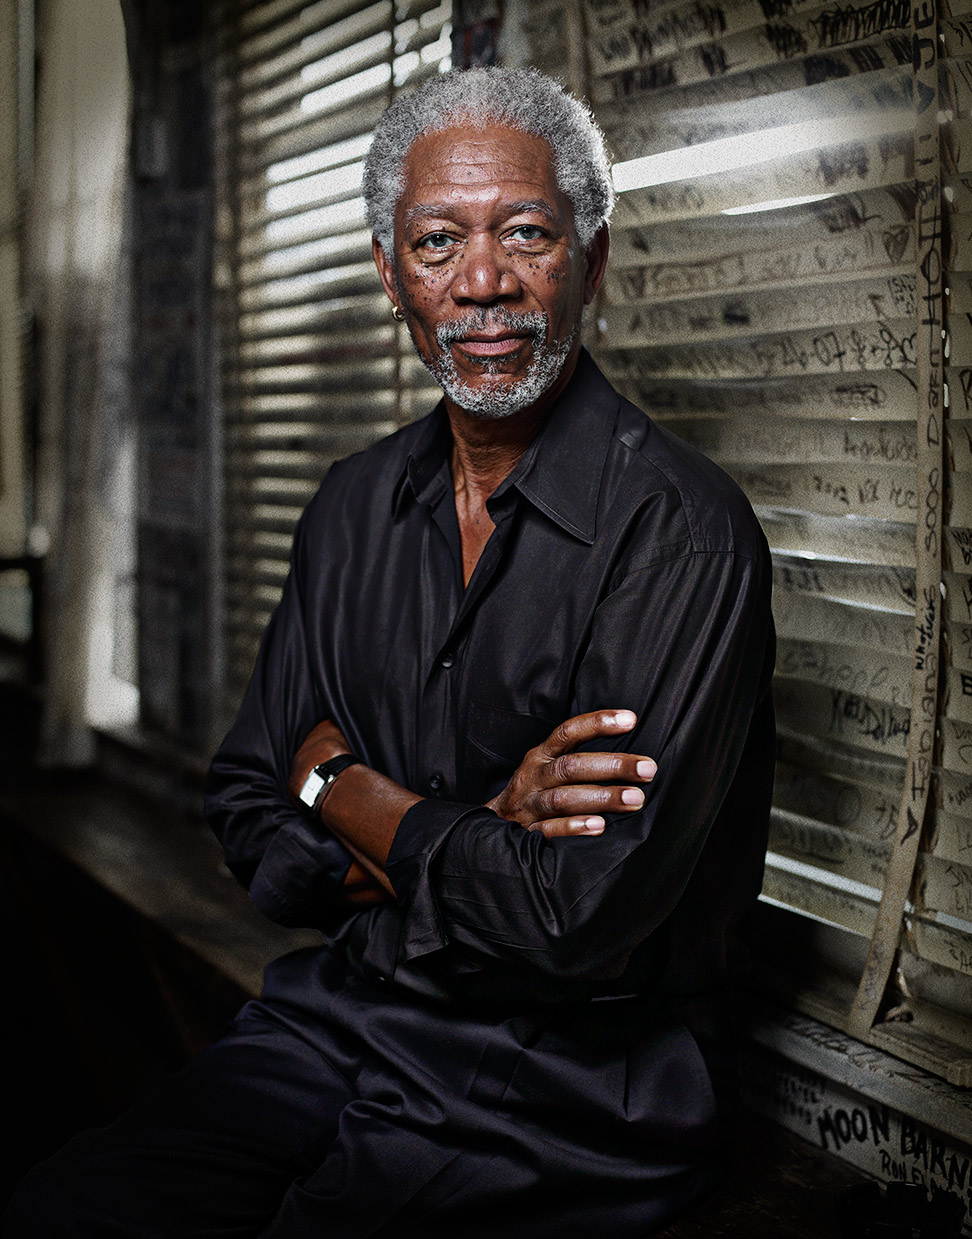 Mark DeLong - Celebrity Photographer - Morgan Freeman relaxing against a window.